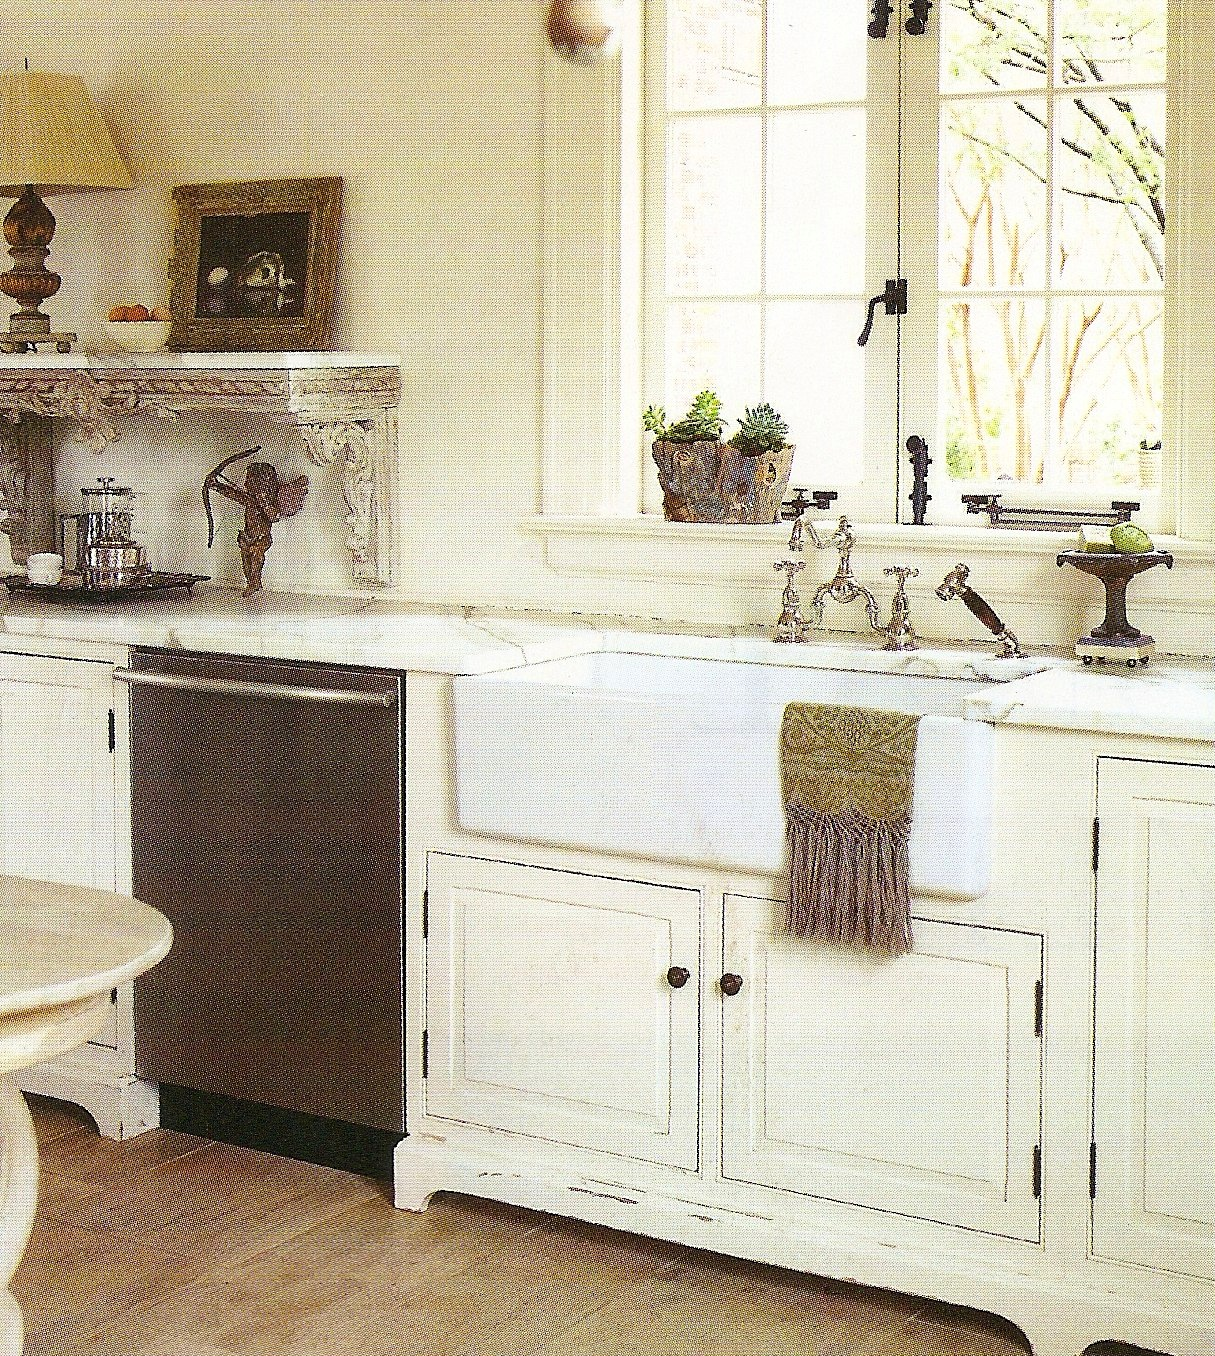 Kitchen Island Instead Of Table: Petit Chateau